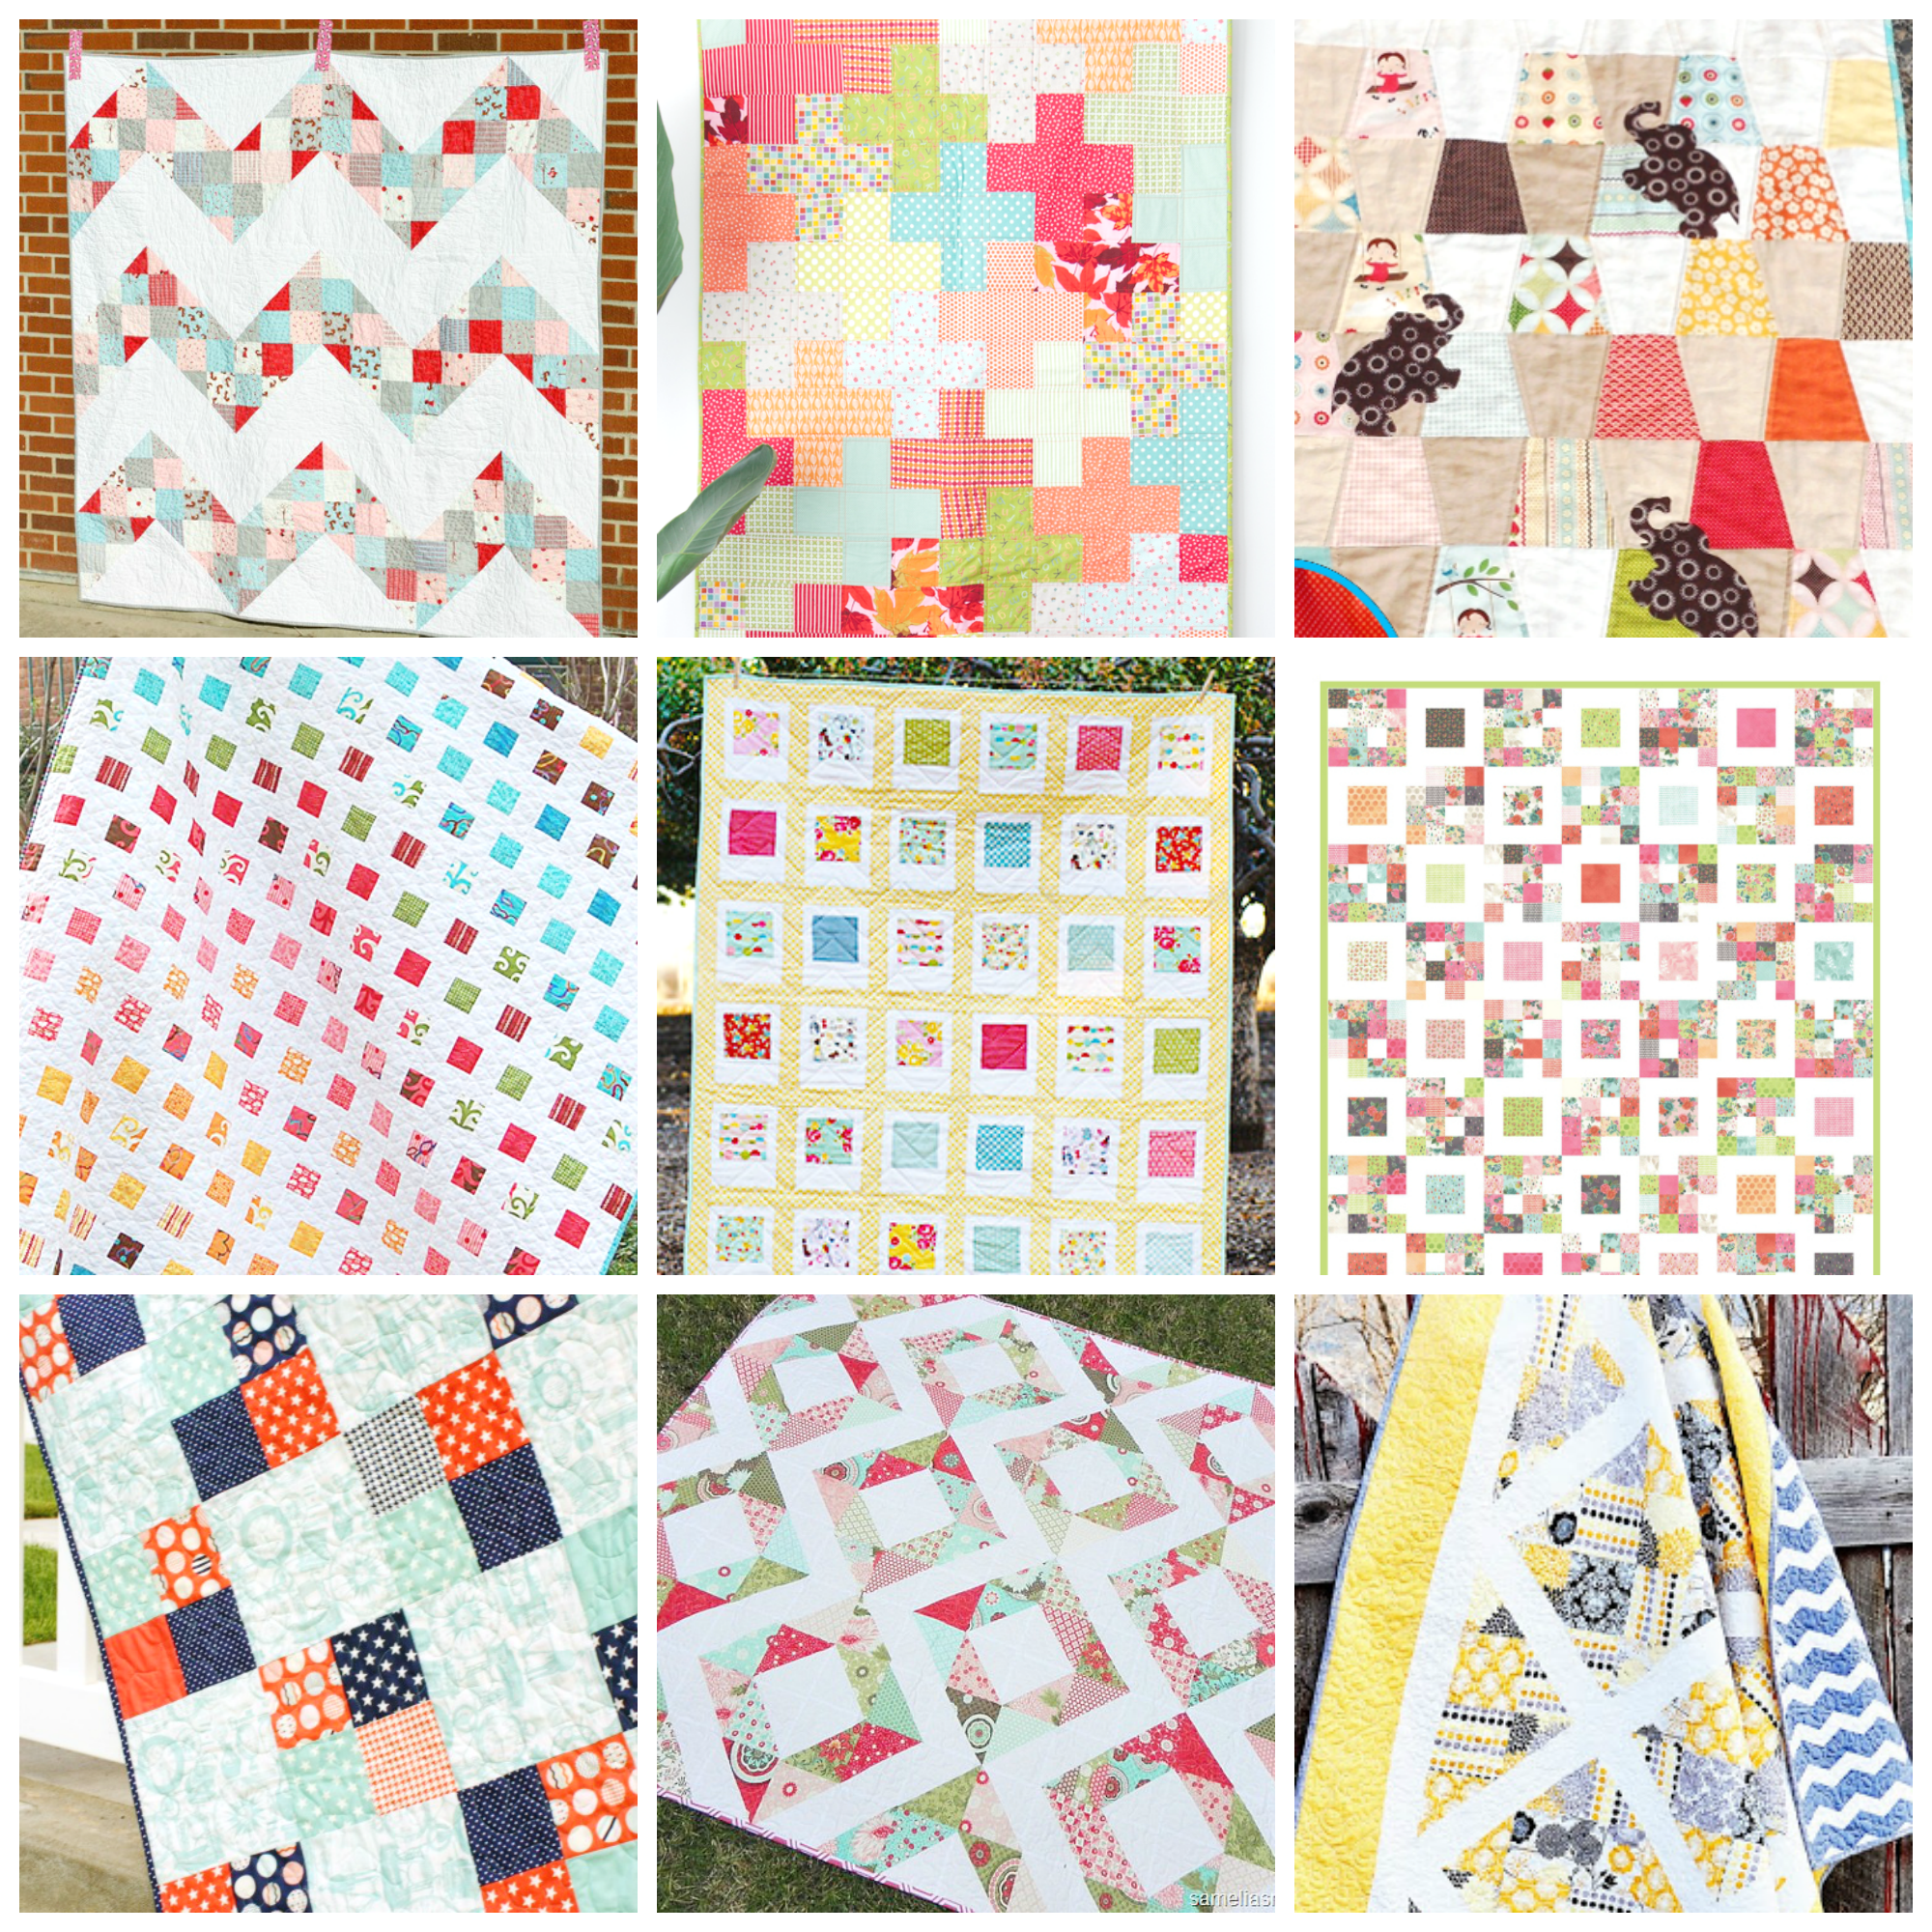 Free Quilt Patterns using Charm Packs! | SEWING TUTORIALS - HOME ... : charm quilt - Adamdwight.com